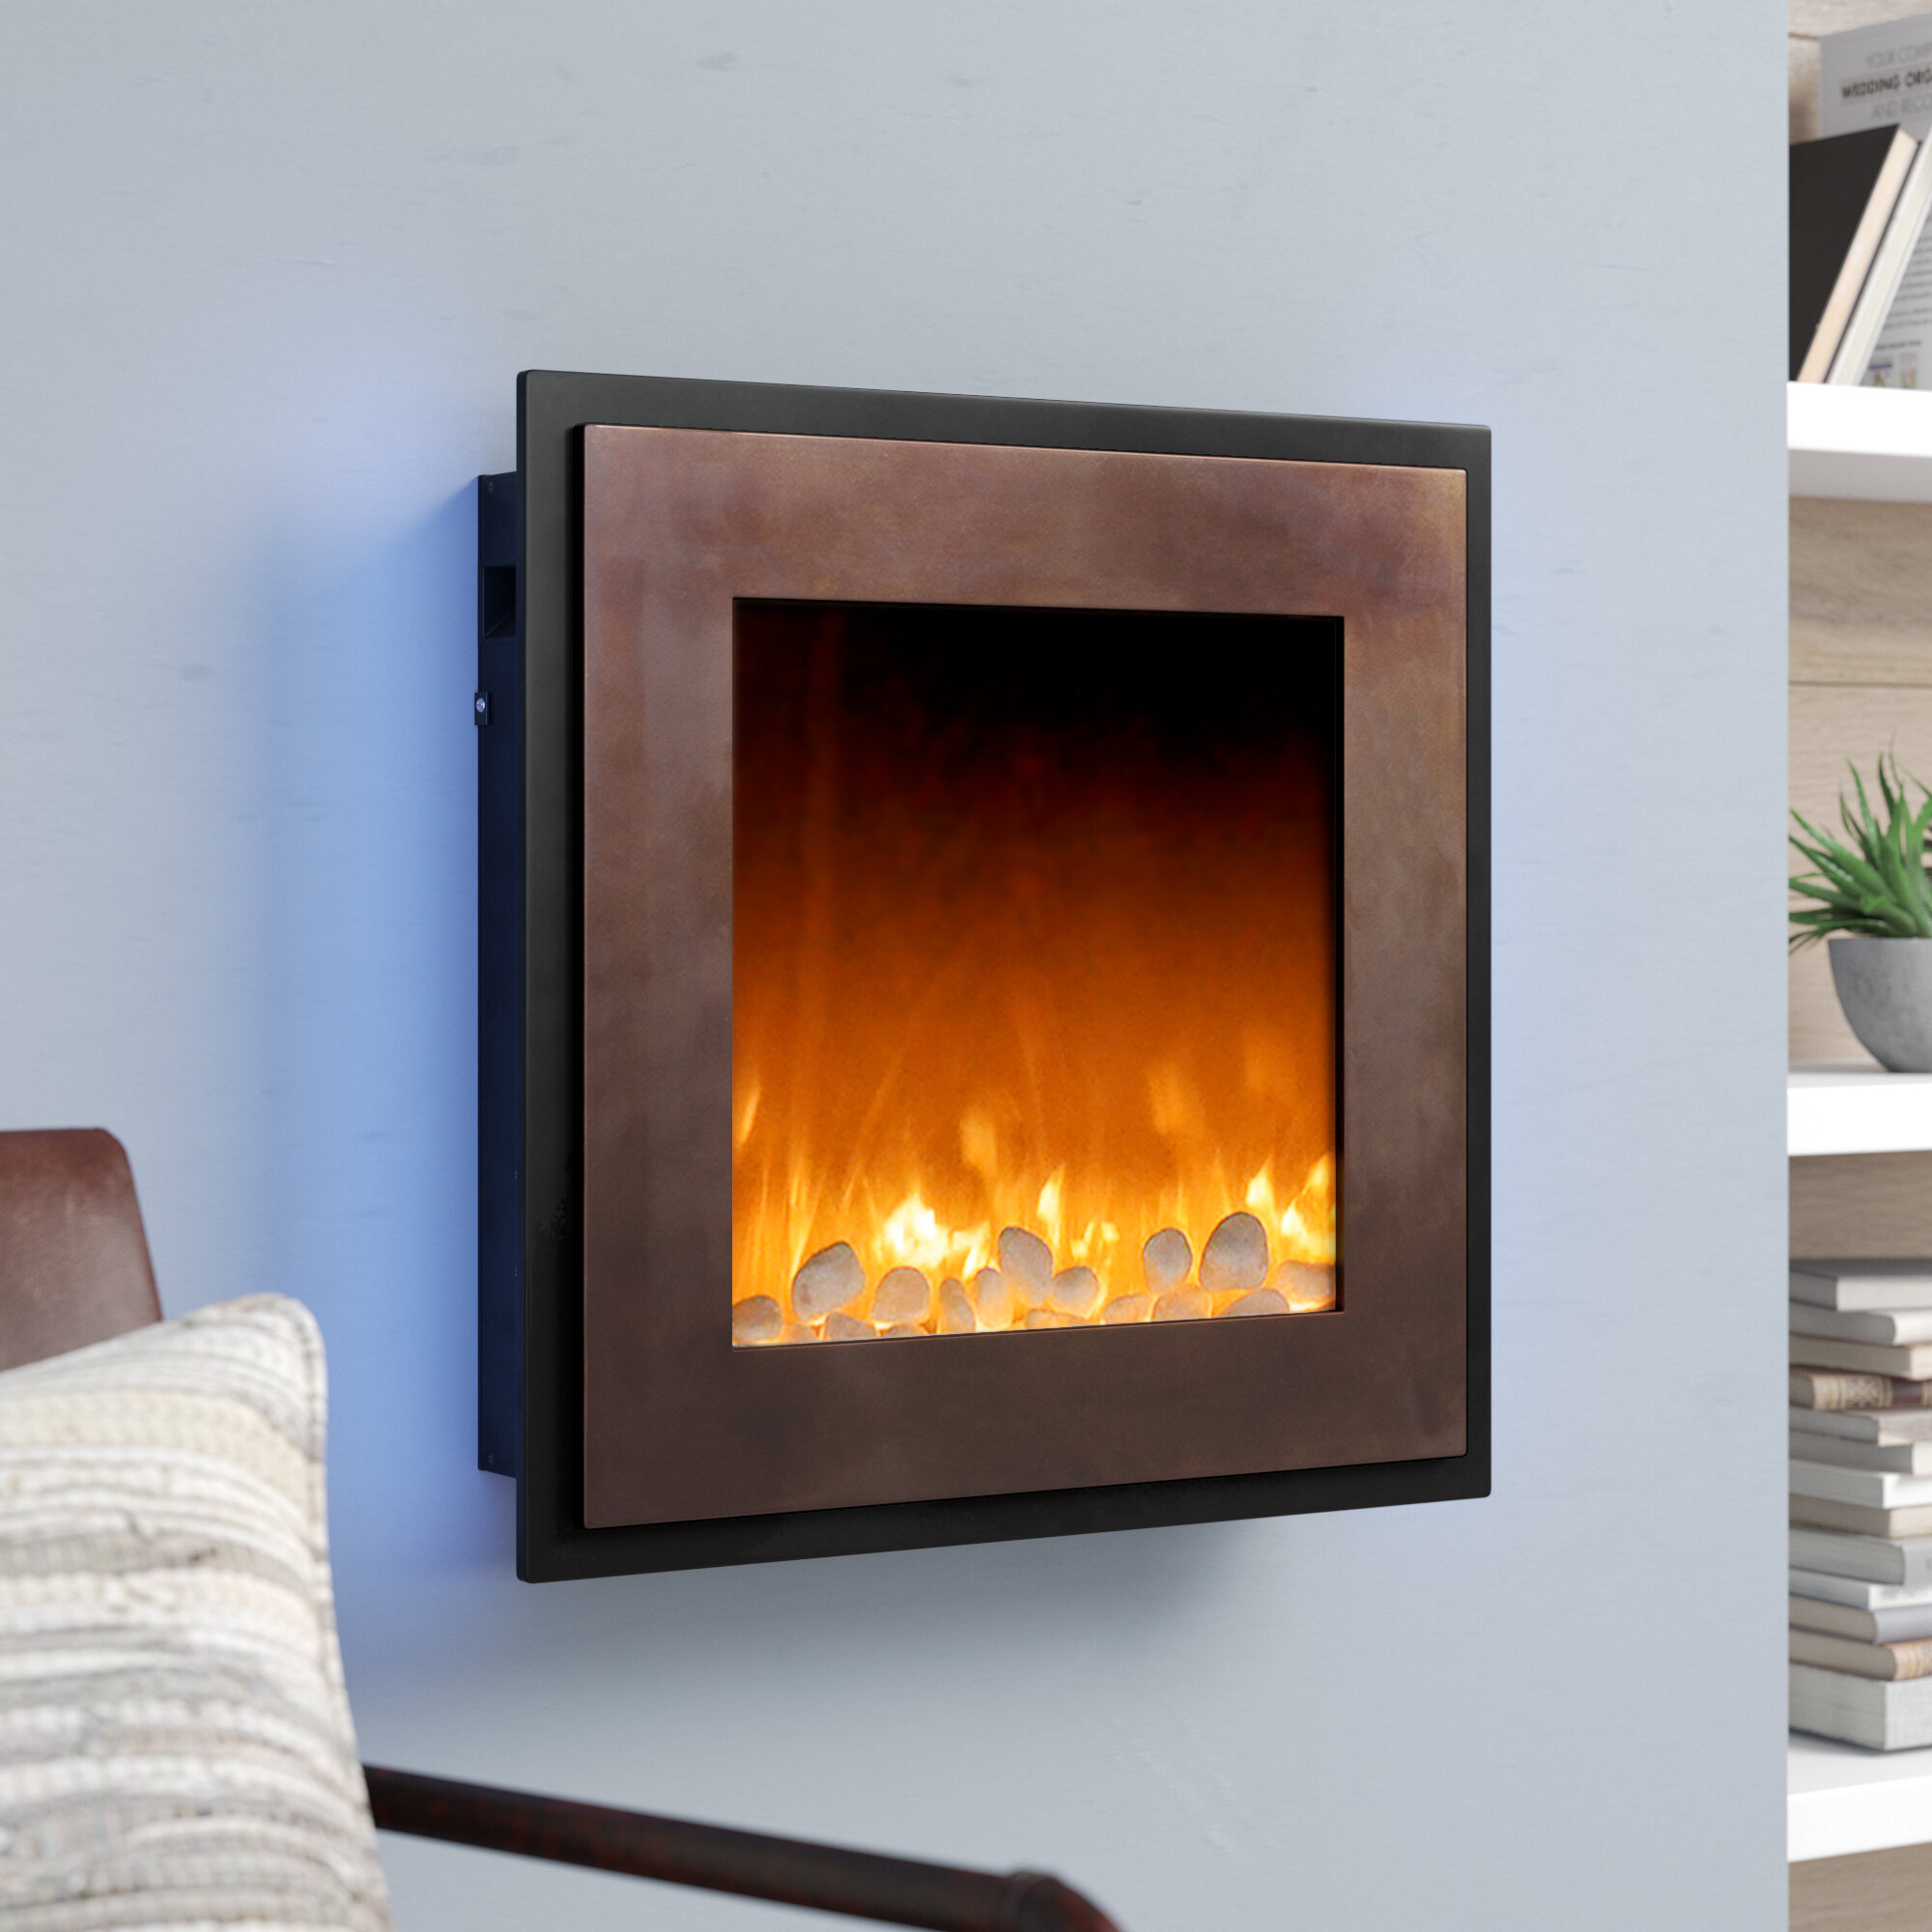 17 stories crites wall mounted electric fireplace reviews wayfair rh wayfair com electric wall mounted fireplace reviews wall mounted electric fireplace amazon